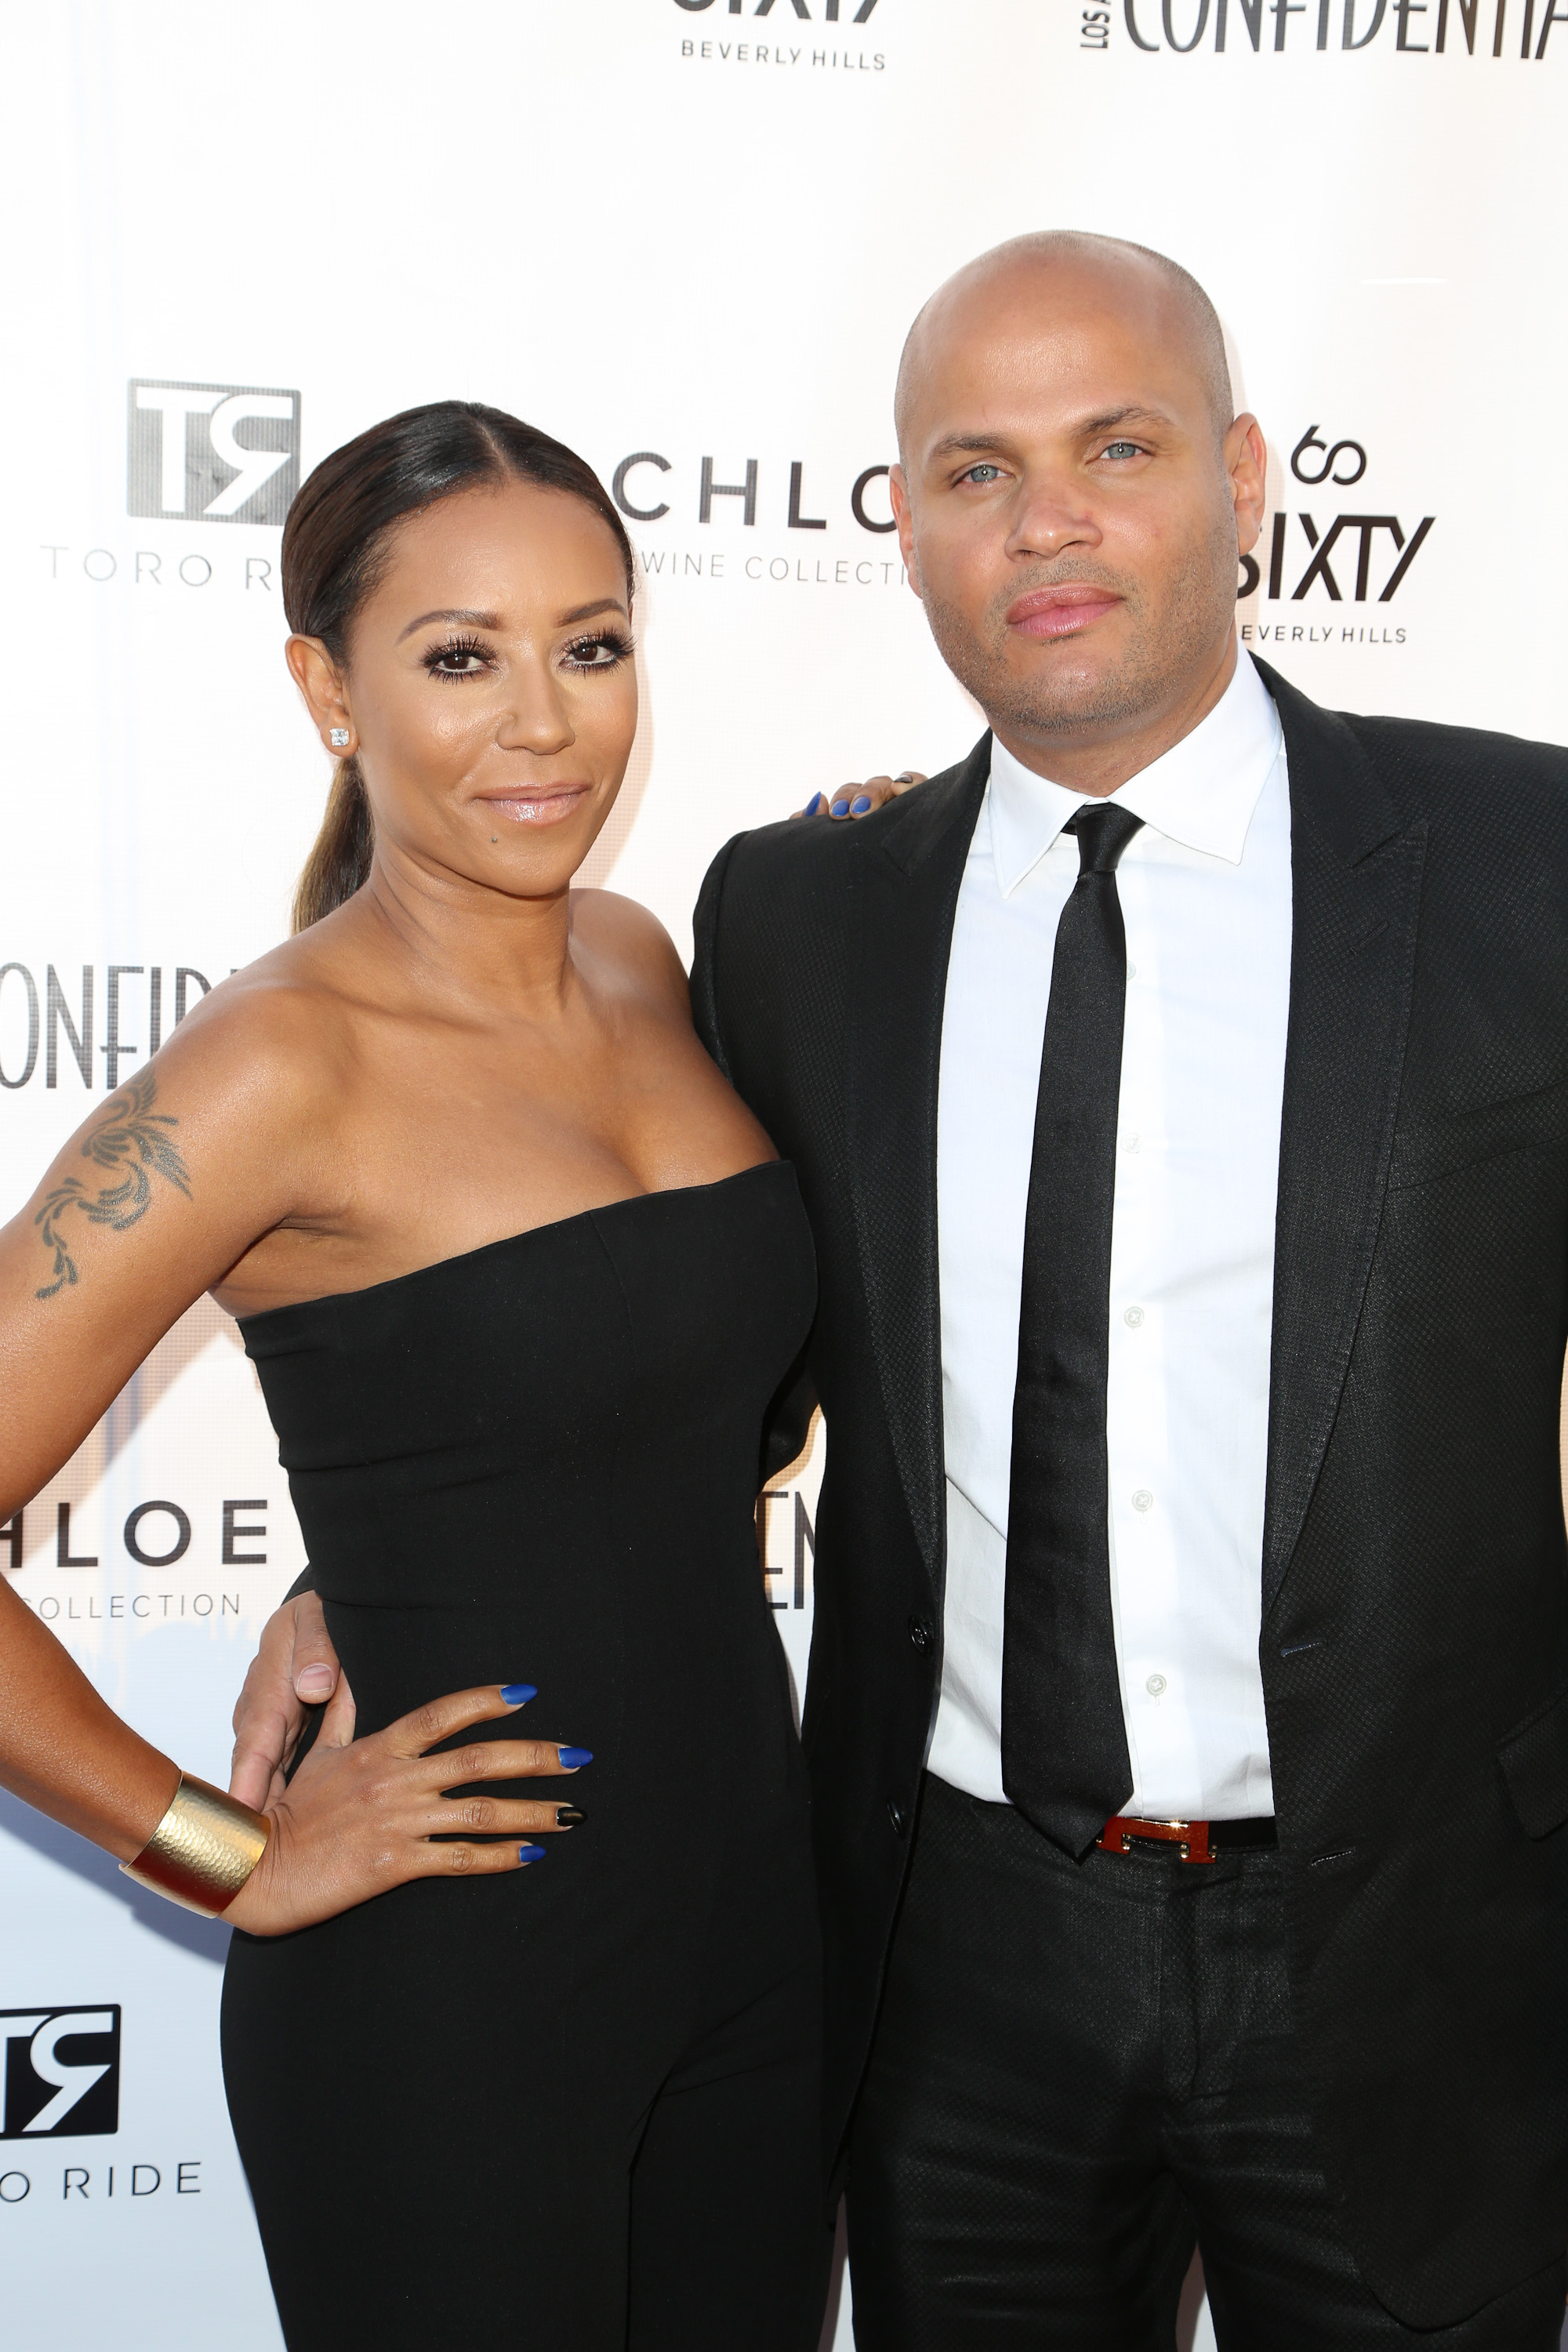 Mel B and Stephen Belafonte (Source: Getty Images)